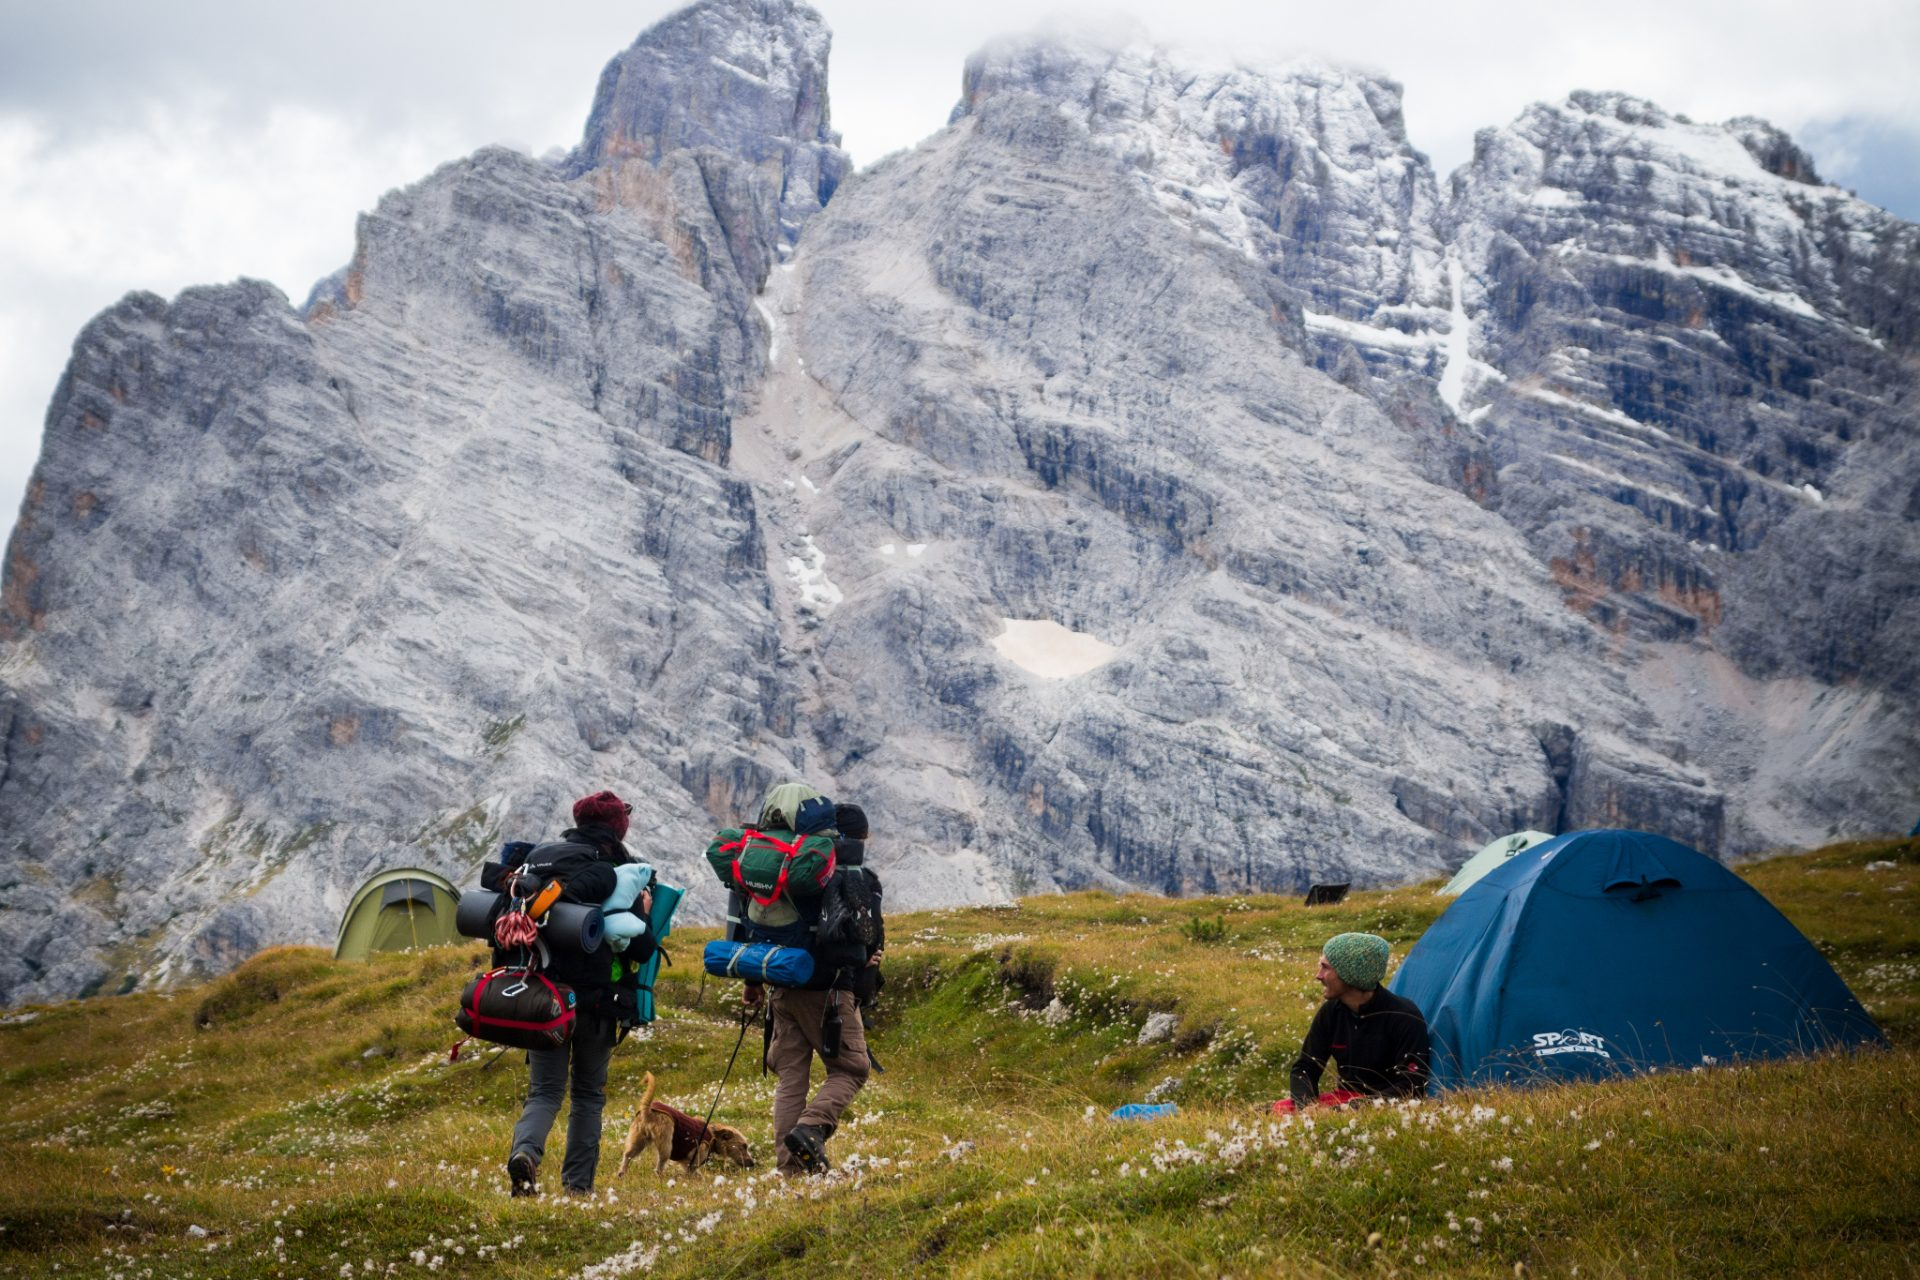 orosz_adam_outdoorinhales_highline_meeting_2014-monte_piana_dolomites_italy_16